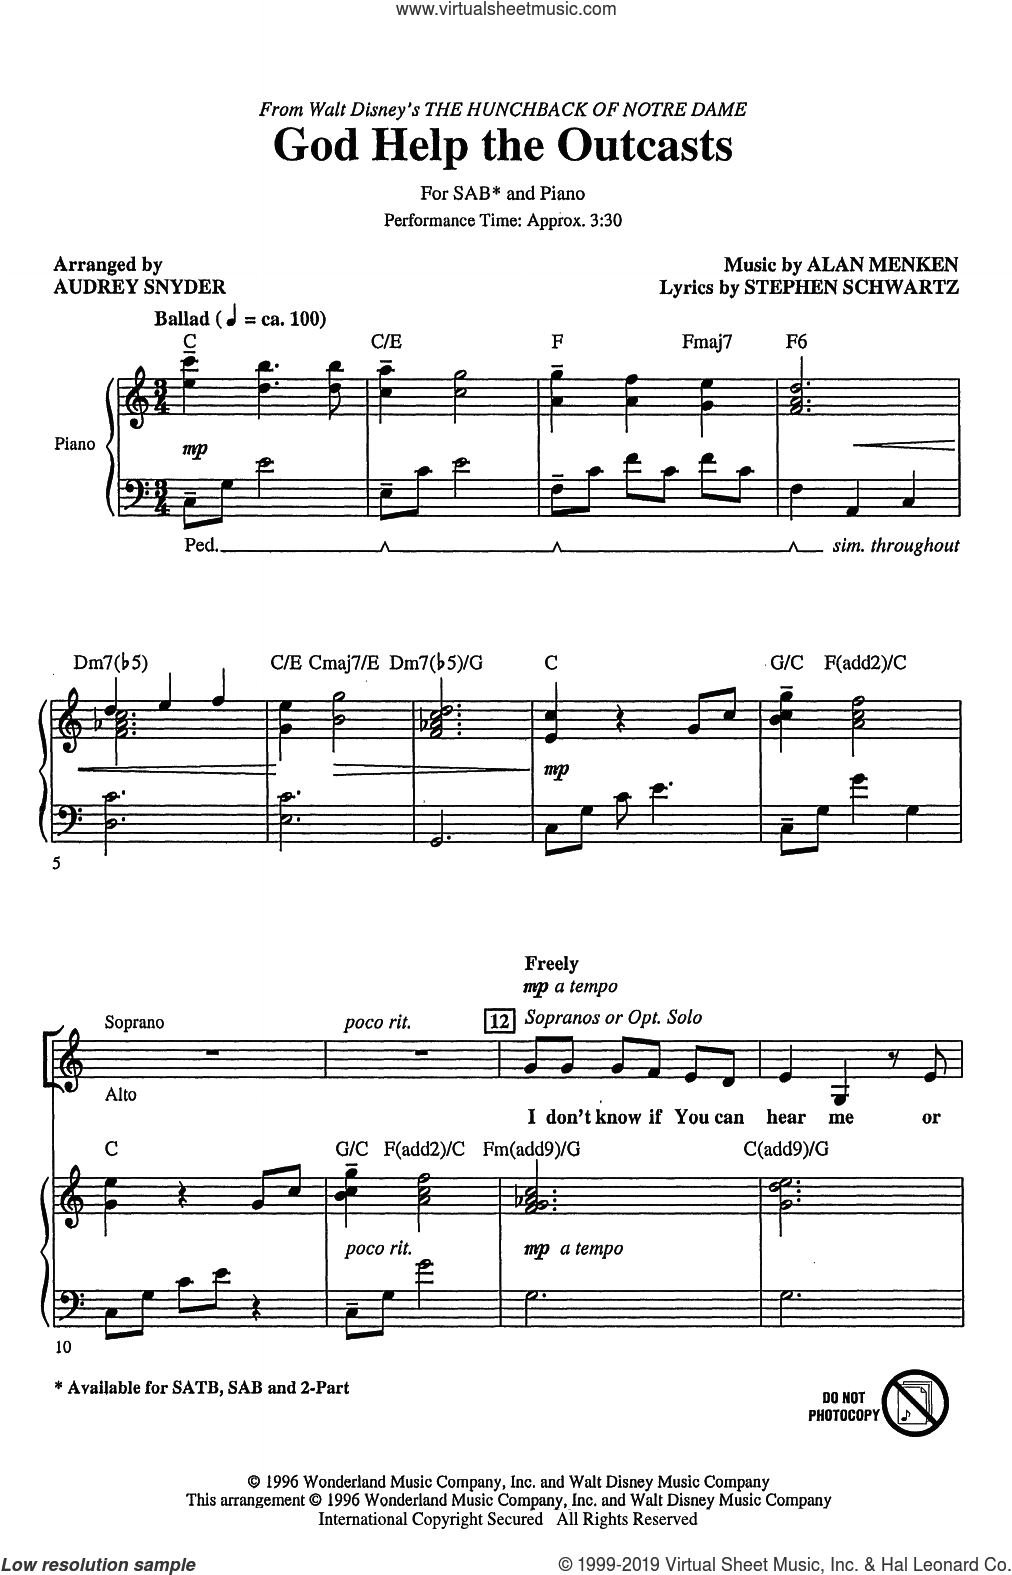 God Help The Outcasts (from The Hunchback Of Notre Dame) (arr. Audrey Snyder) sheet music for choir (SAB: soprano, alto, bass) by Bette Midler, Audrey Snyder, Alan Menken and Stephen Schwartz, intermediate skill level